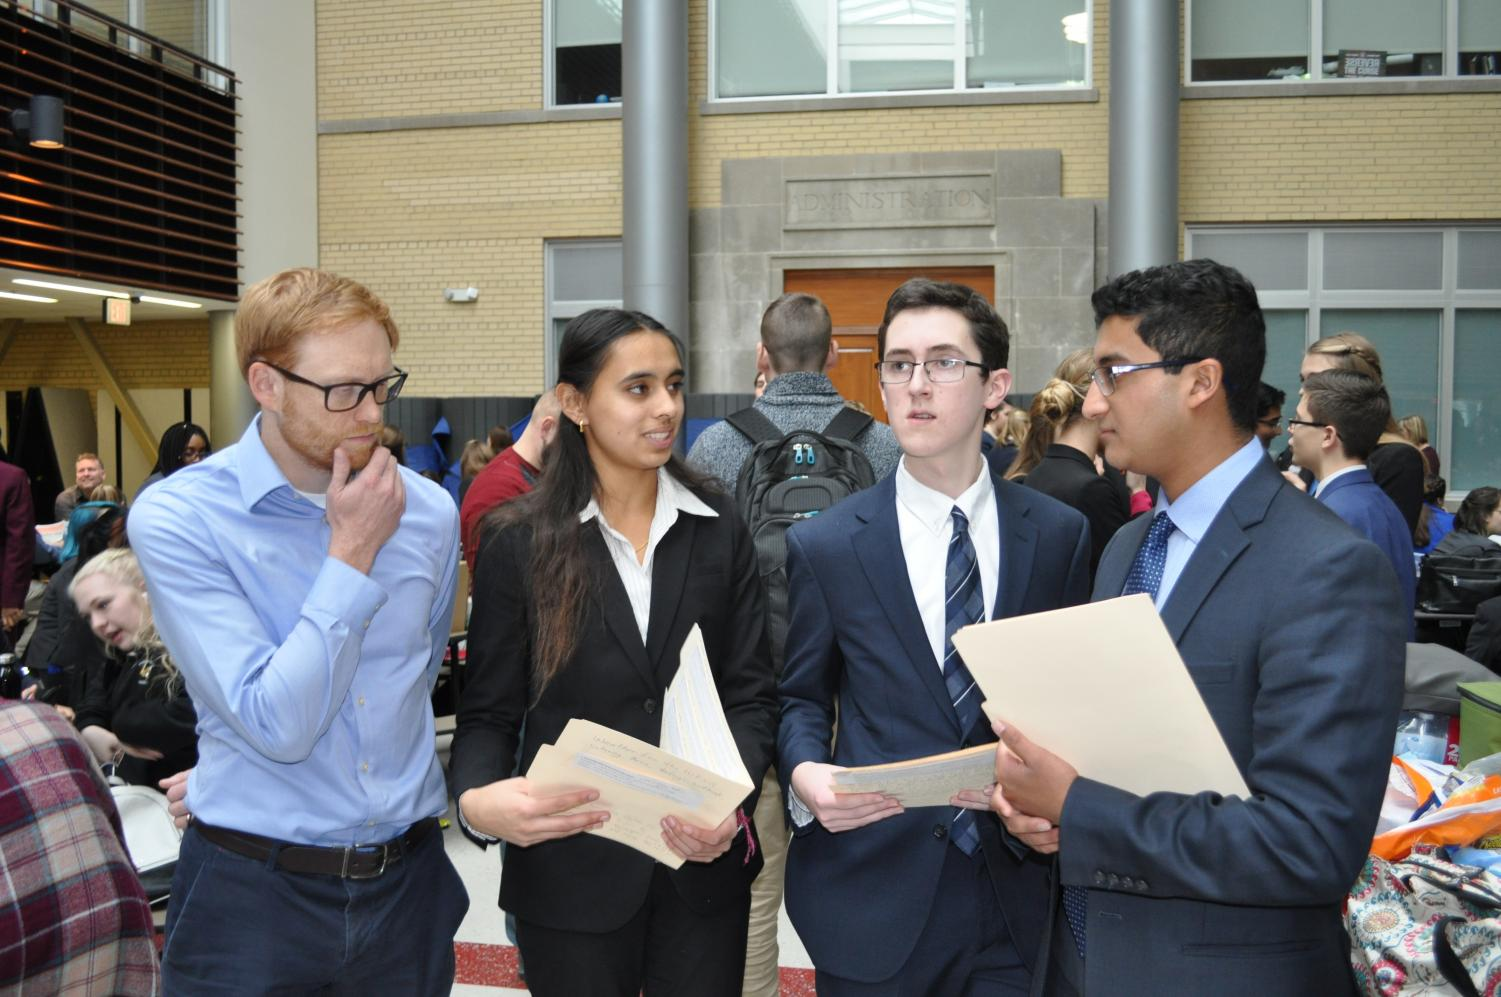 Members of the forensics team prepare with Mr. Wilbur (pictured left), coach and social studies teacher, for their events at a competition at Naperville Central High School on Sunday, Dec. 12.